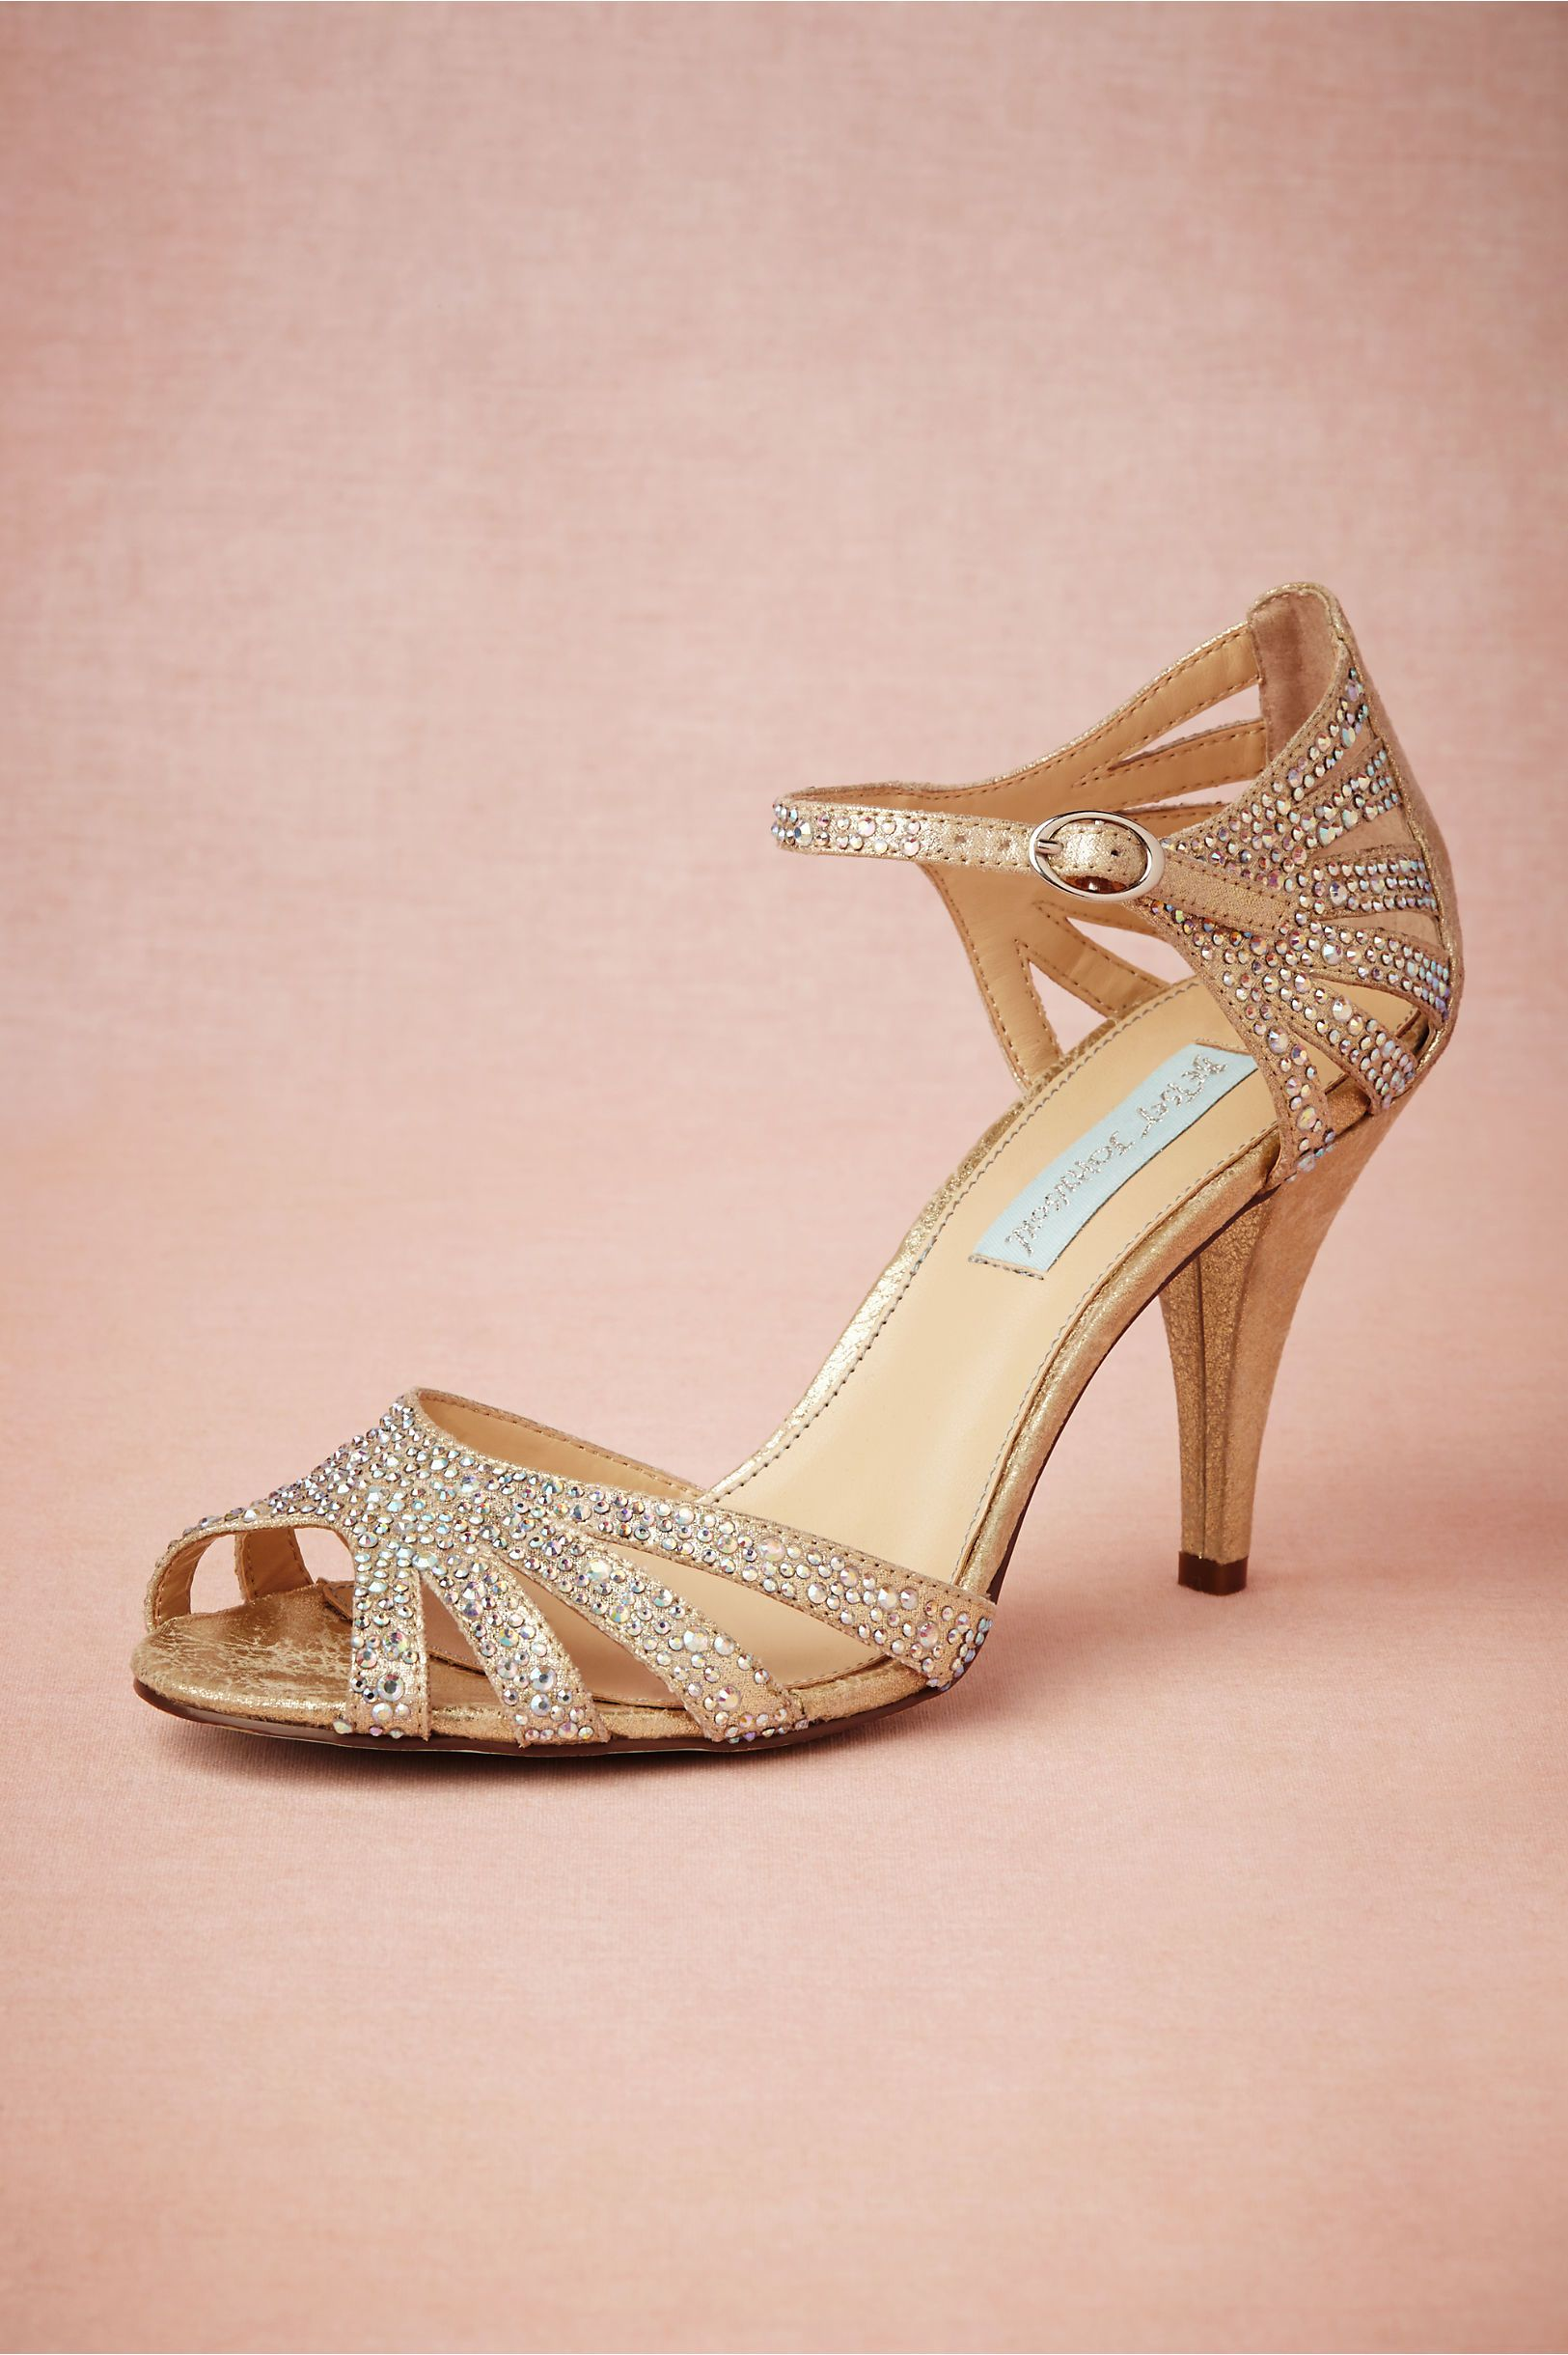 Champagne Sparkle Heels in Shoes   Accessories Shoes at BHLDN ... 11bd35ed751c